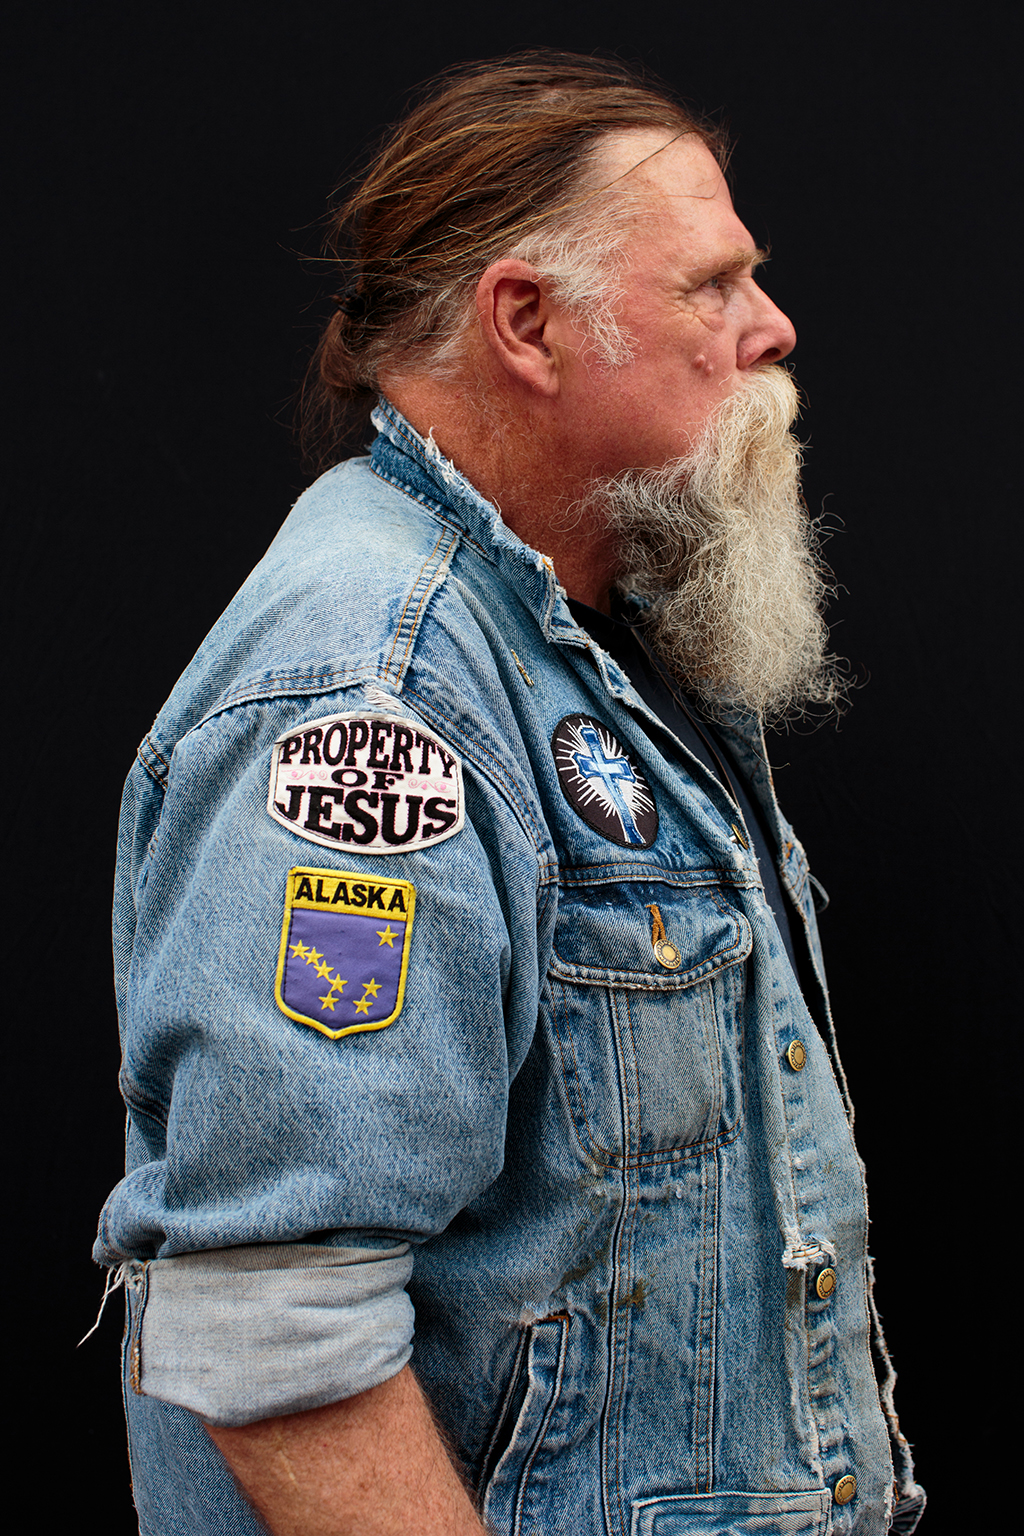 Greg Mathes, July 17, 2016, poses for a portrait before the start of the Republican National Convention in Cleveland. Mathes is from Anchorage, Alaska, and is at the RNC to promote his religion: Jesus and politics.